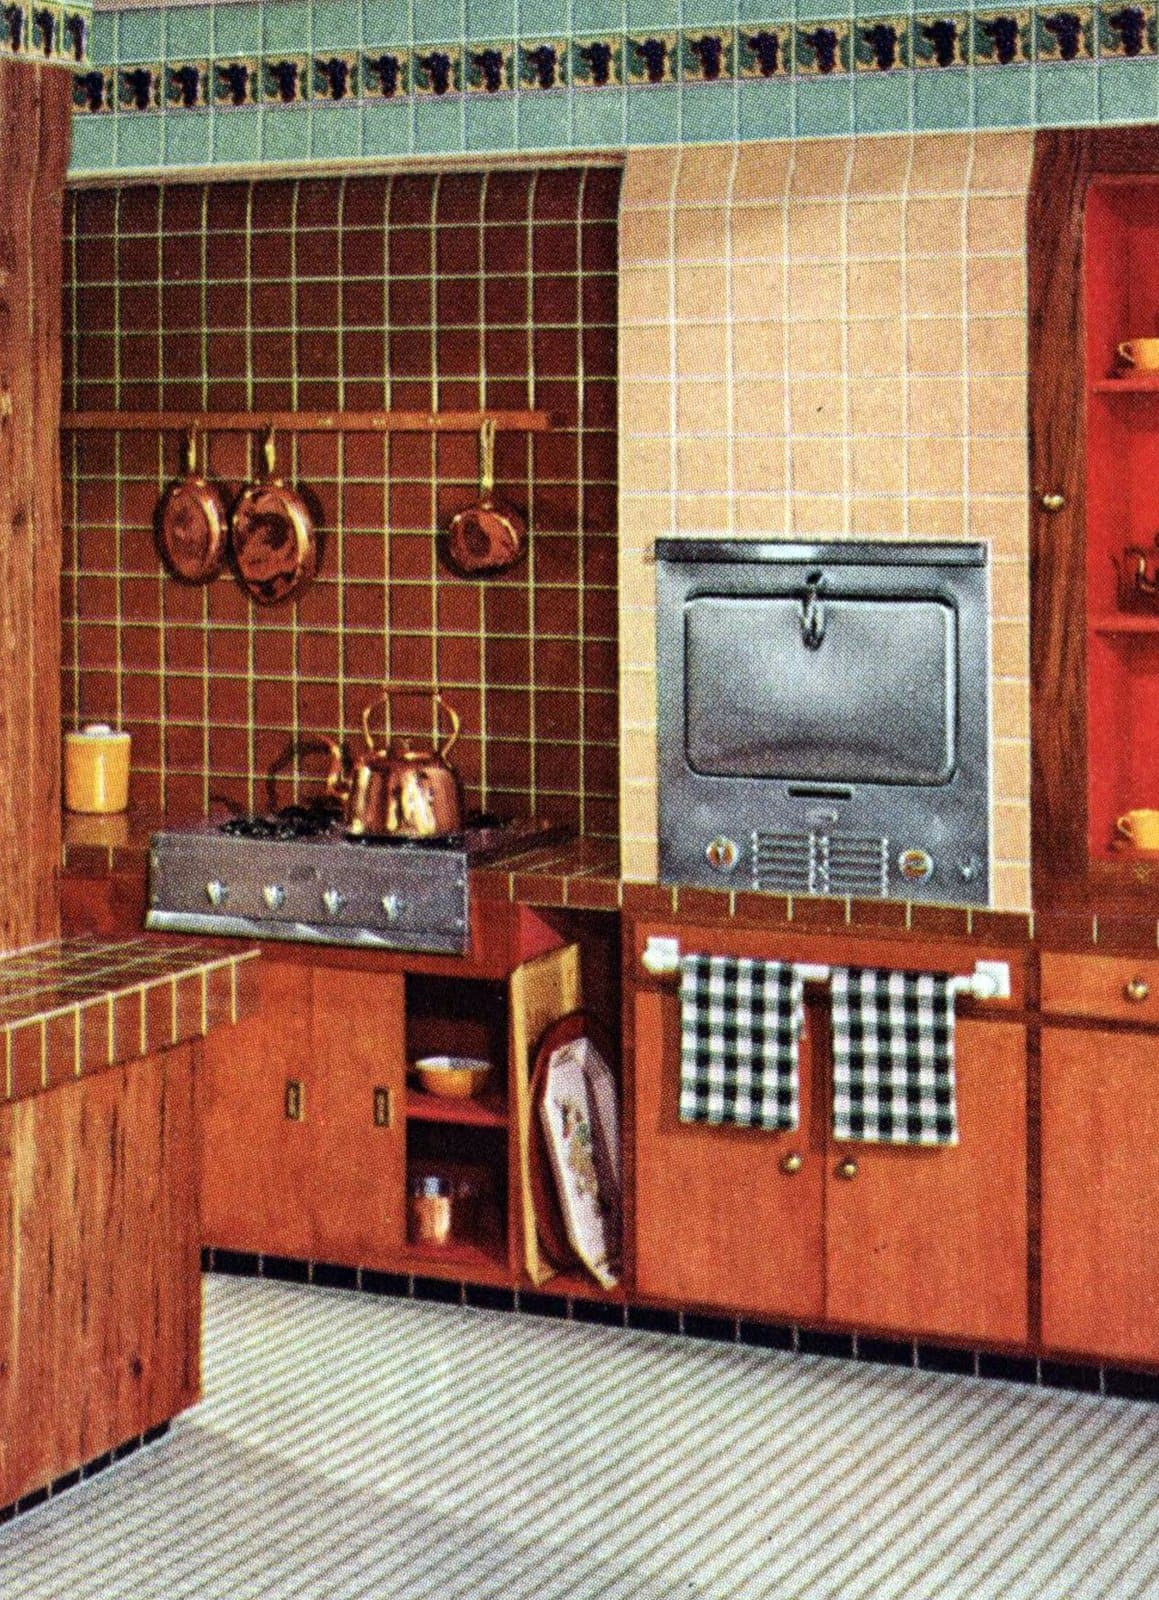 Vintage tile design ideas for your kitchen from the 1950s